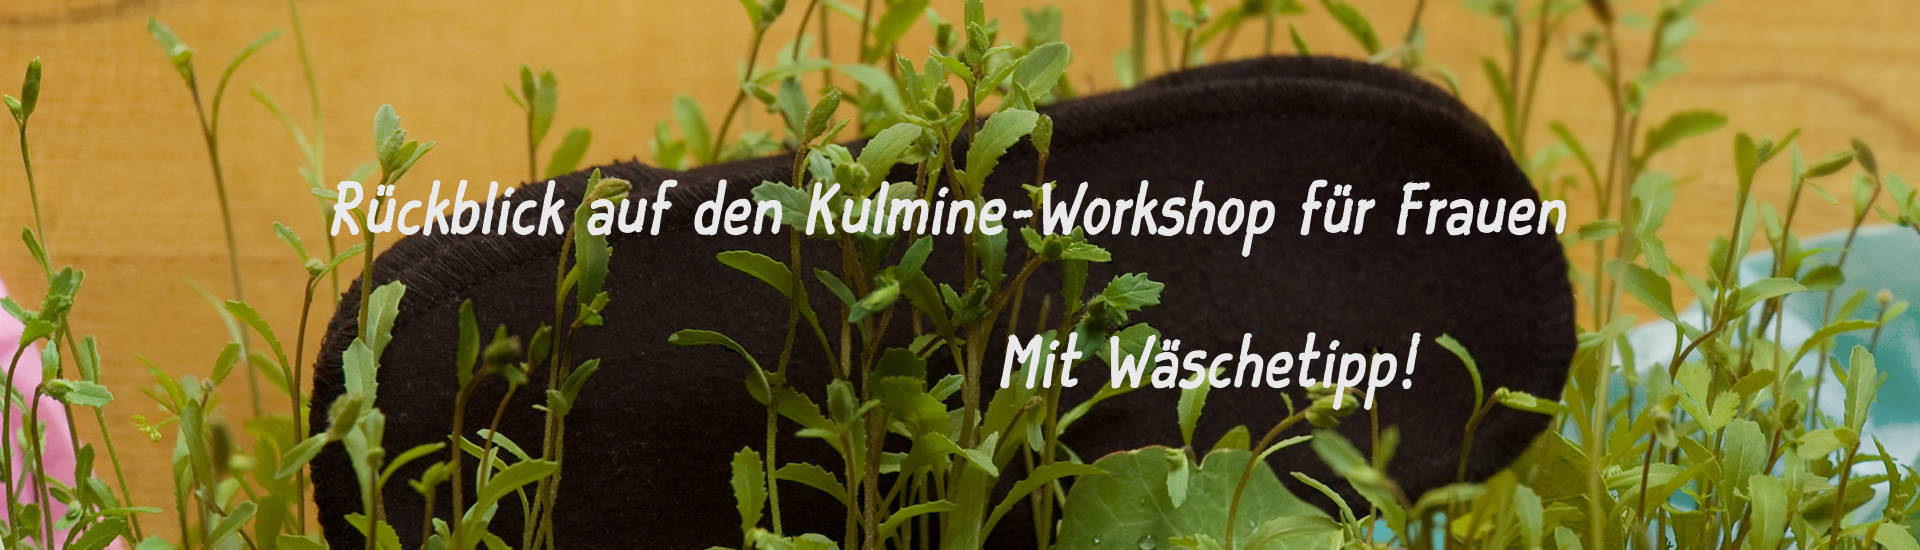 Kulmine-Banner - Workshop / Rückblick